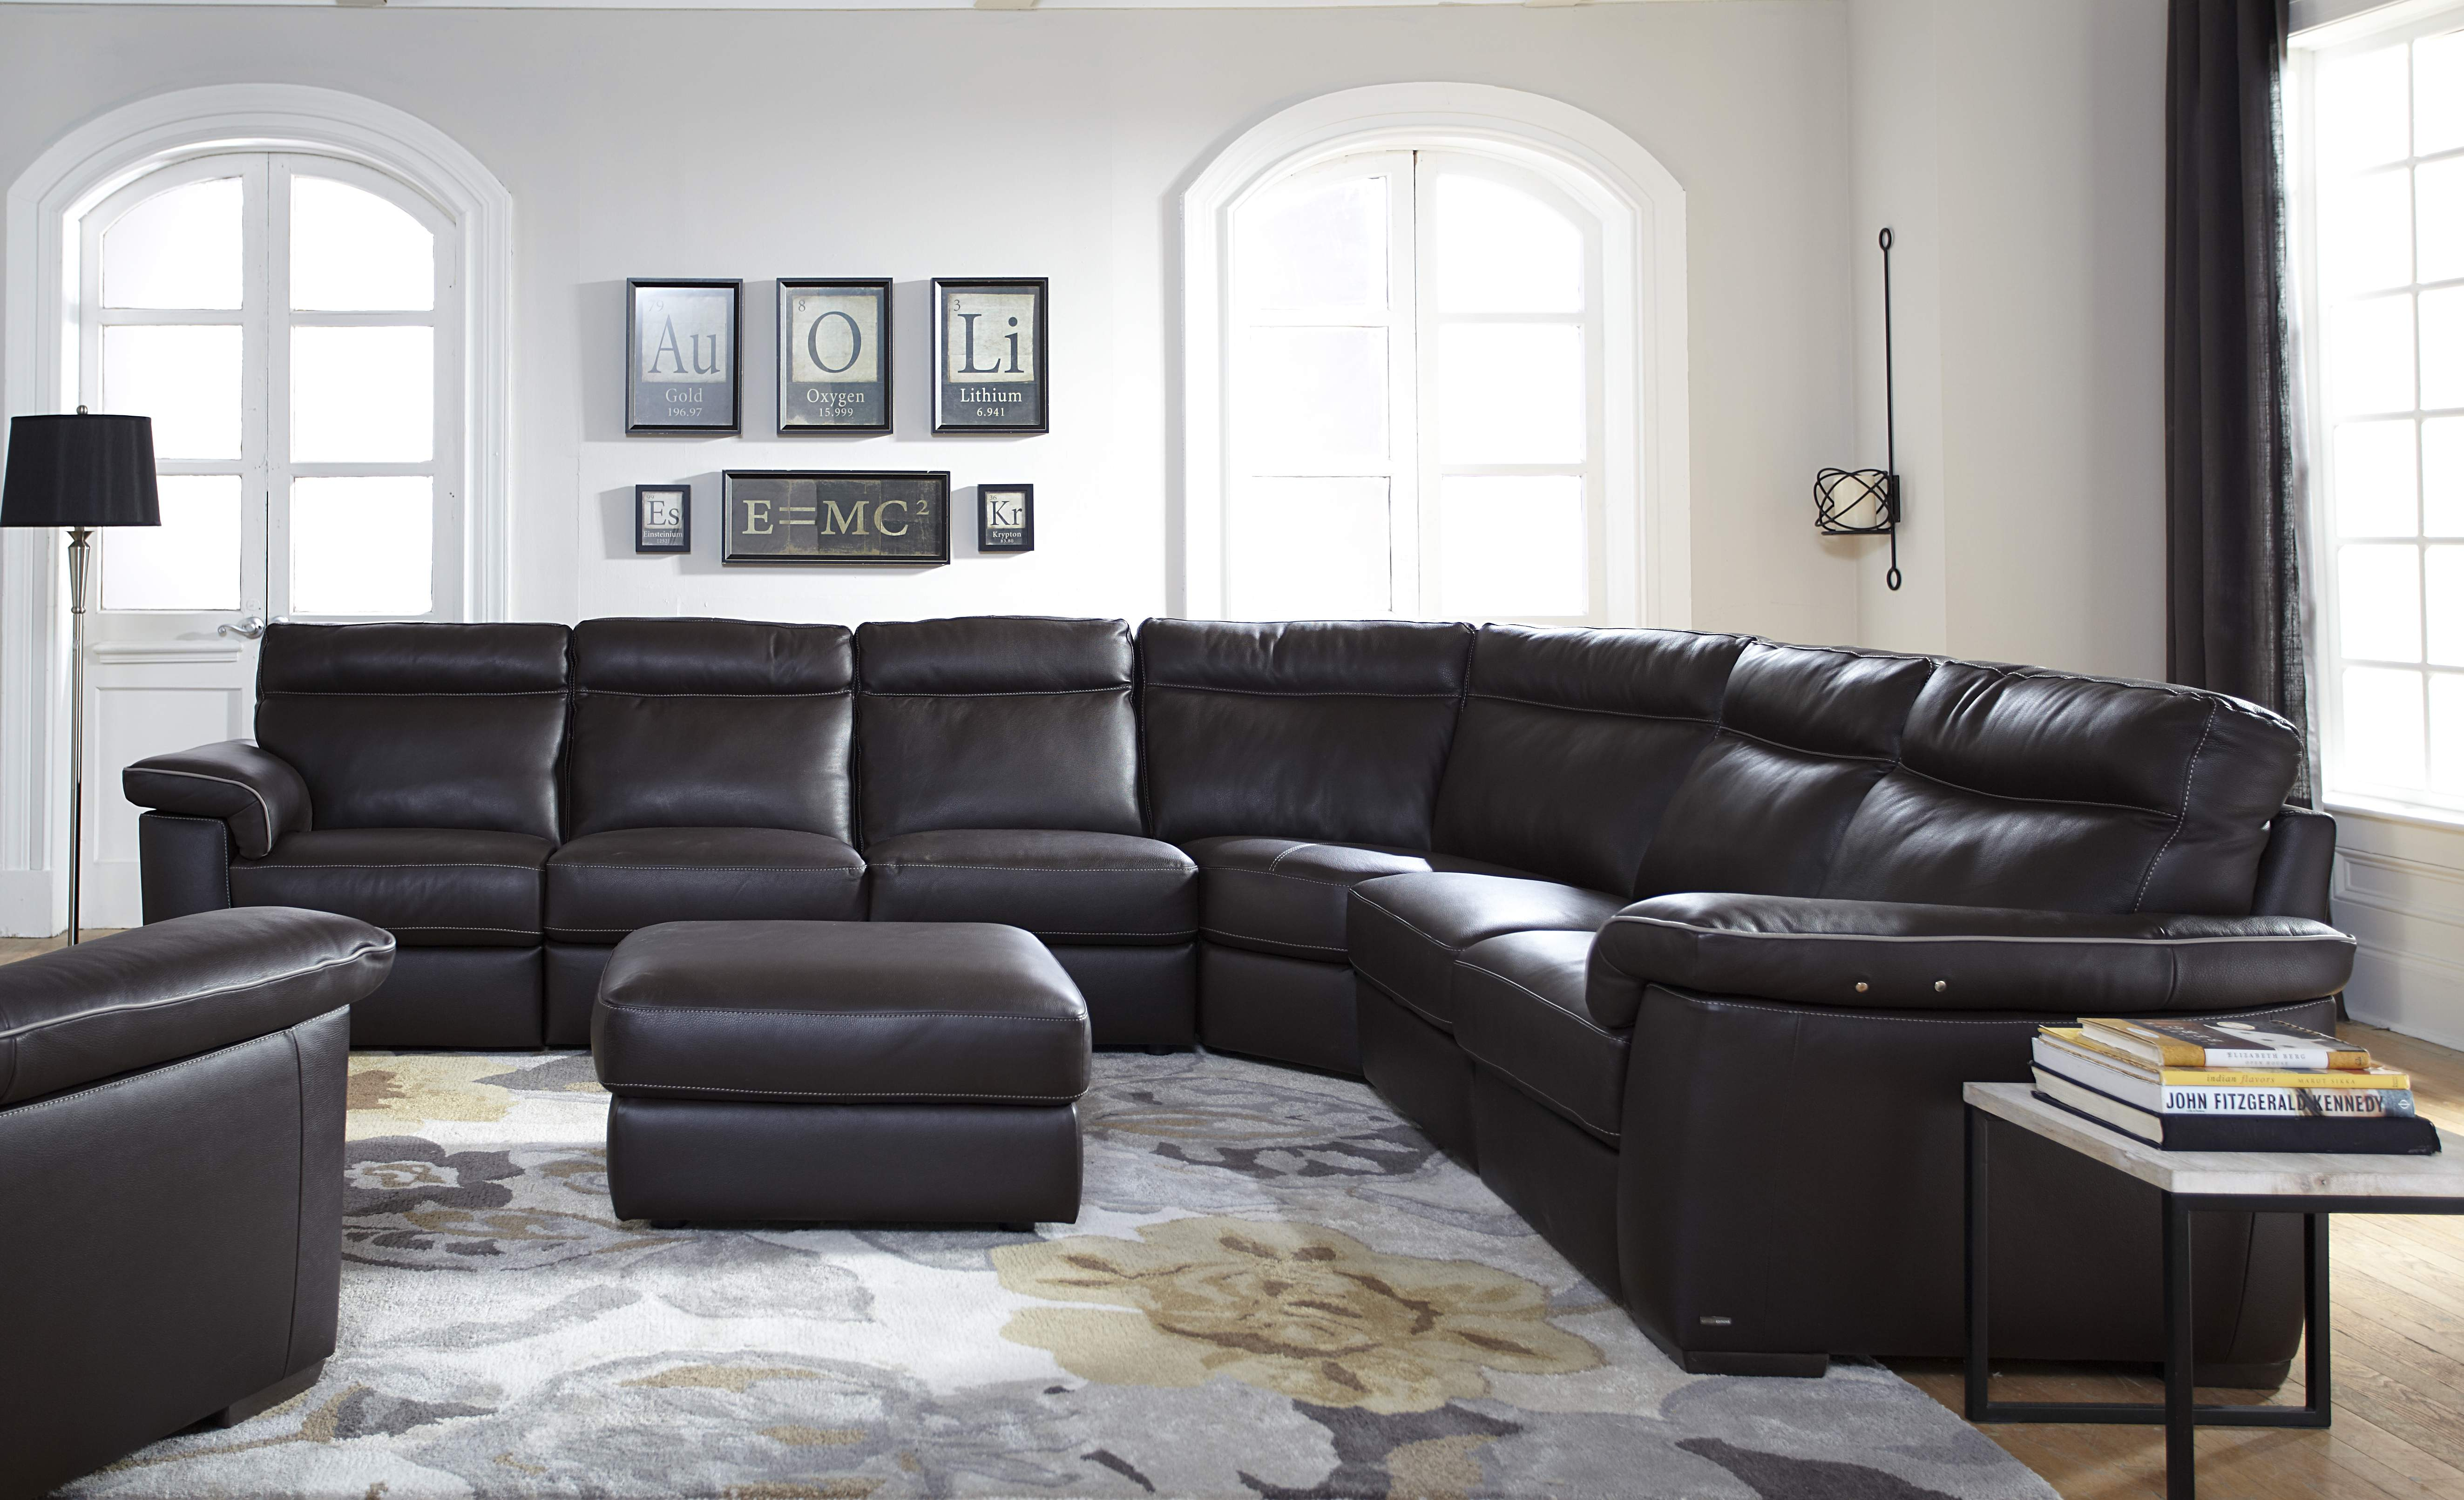 parker leather sofa reviews solid wood set in bangalore natuzzi editions brivido b757 sectional | one ten home ...